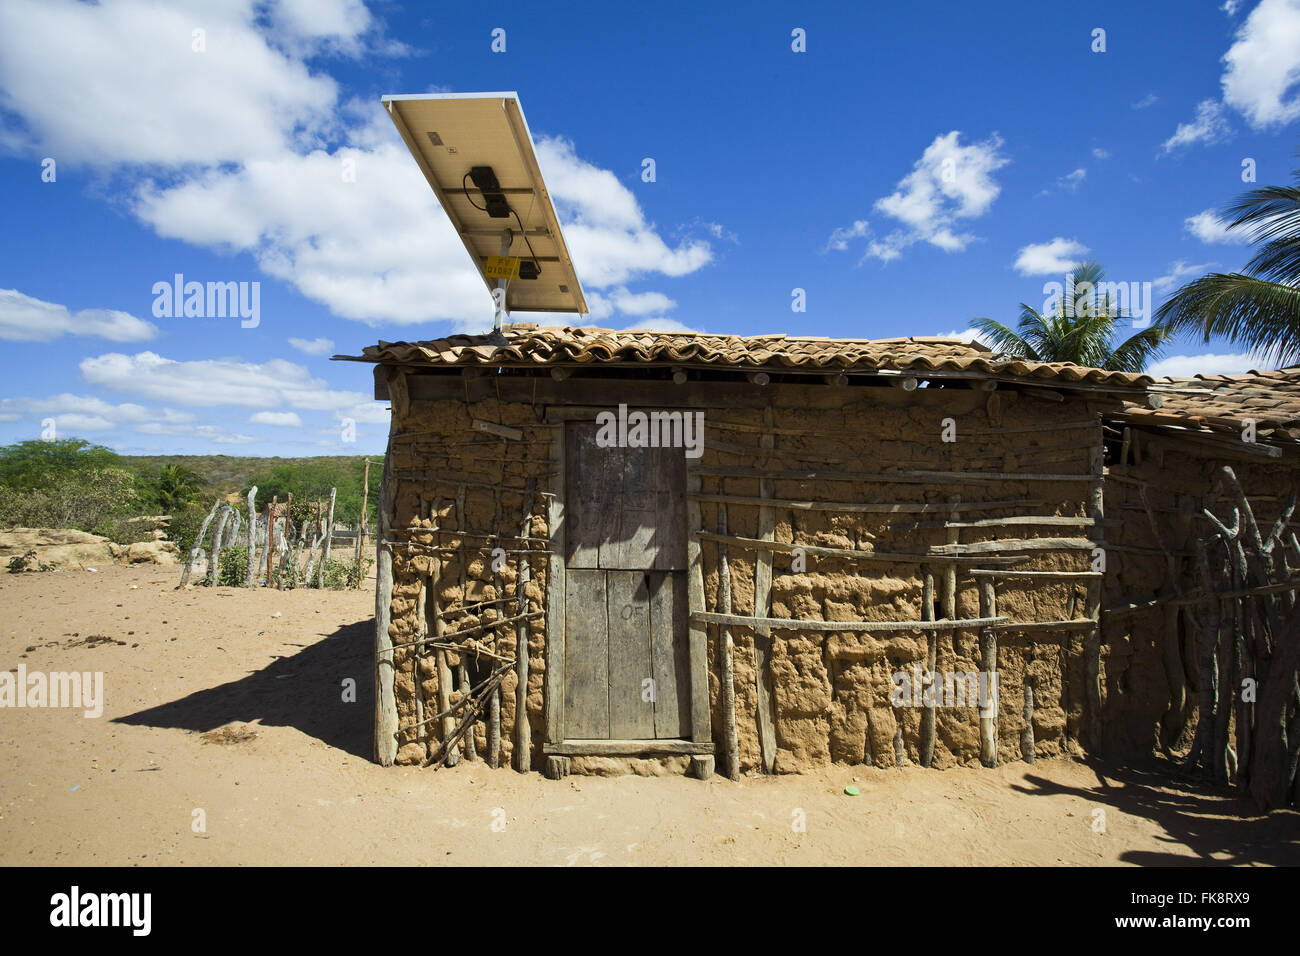 House of wattle and daub with funding solar panel for generating electricity for - Stock Image